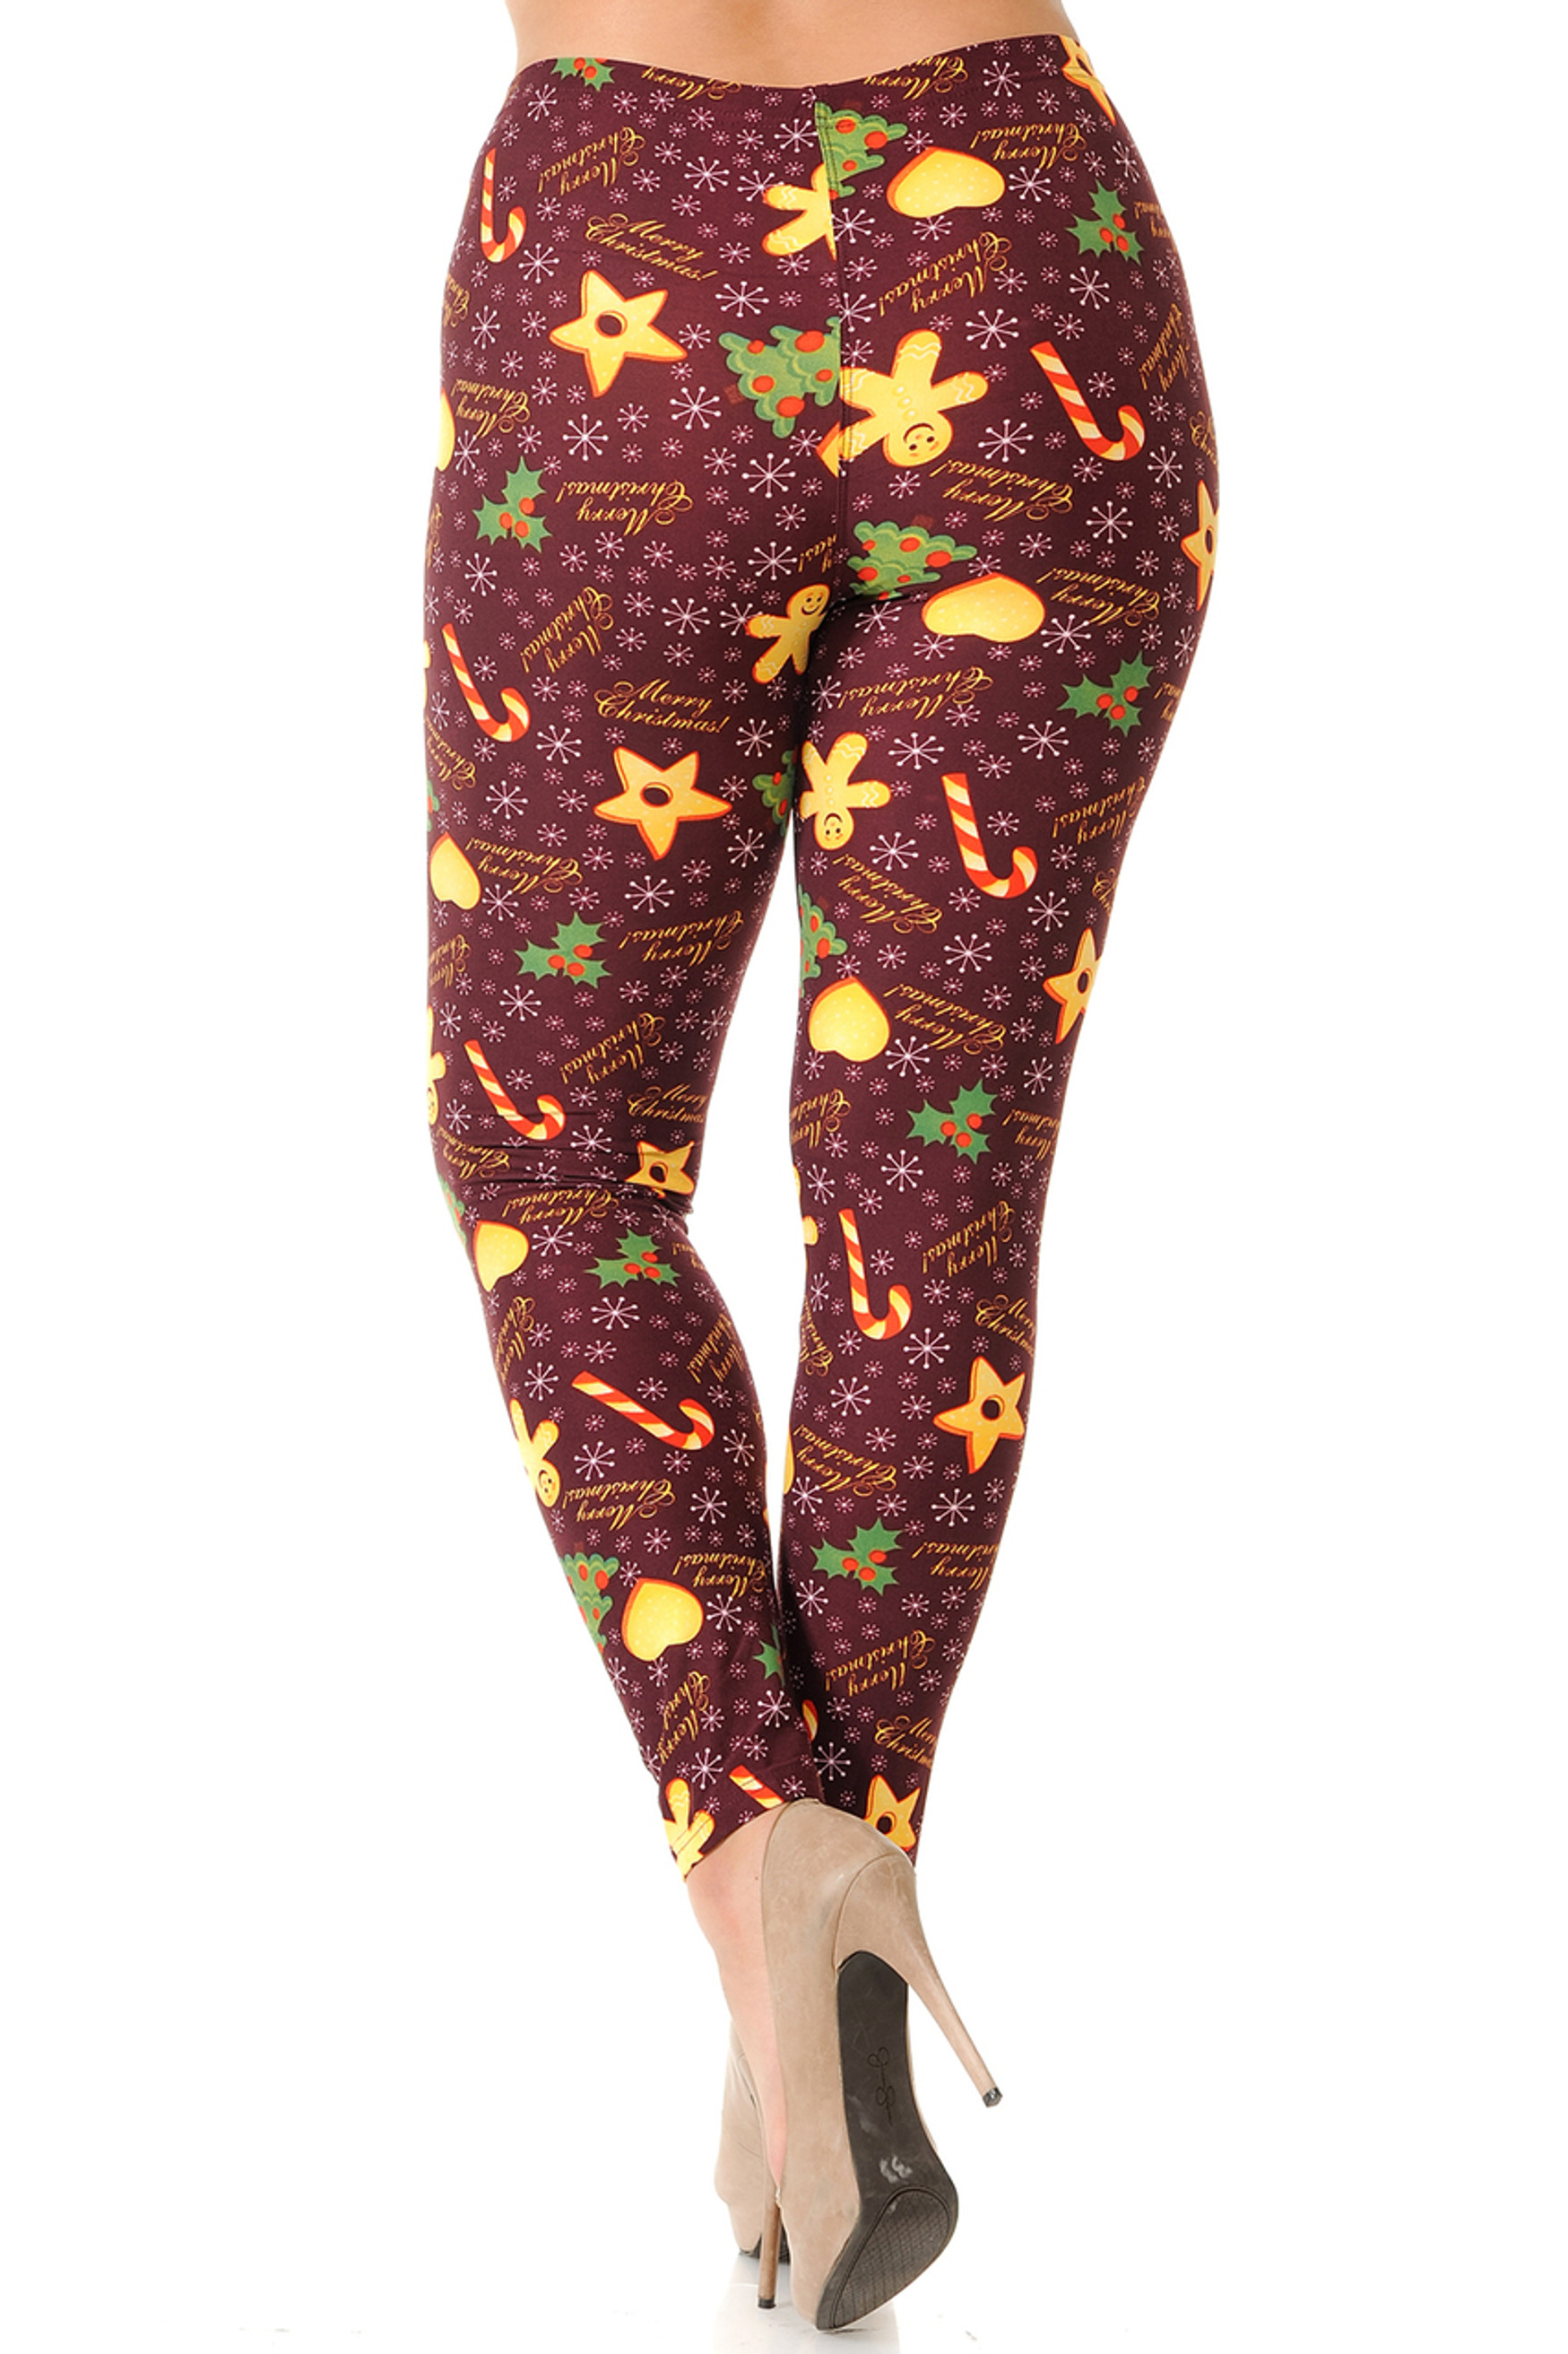 Brushed Merry Christmas Treats and Cookies Plus Size Leggings